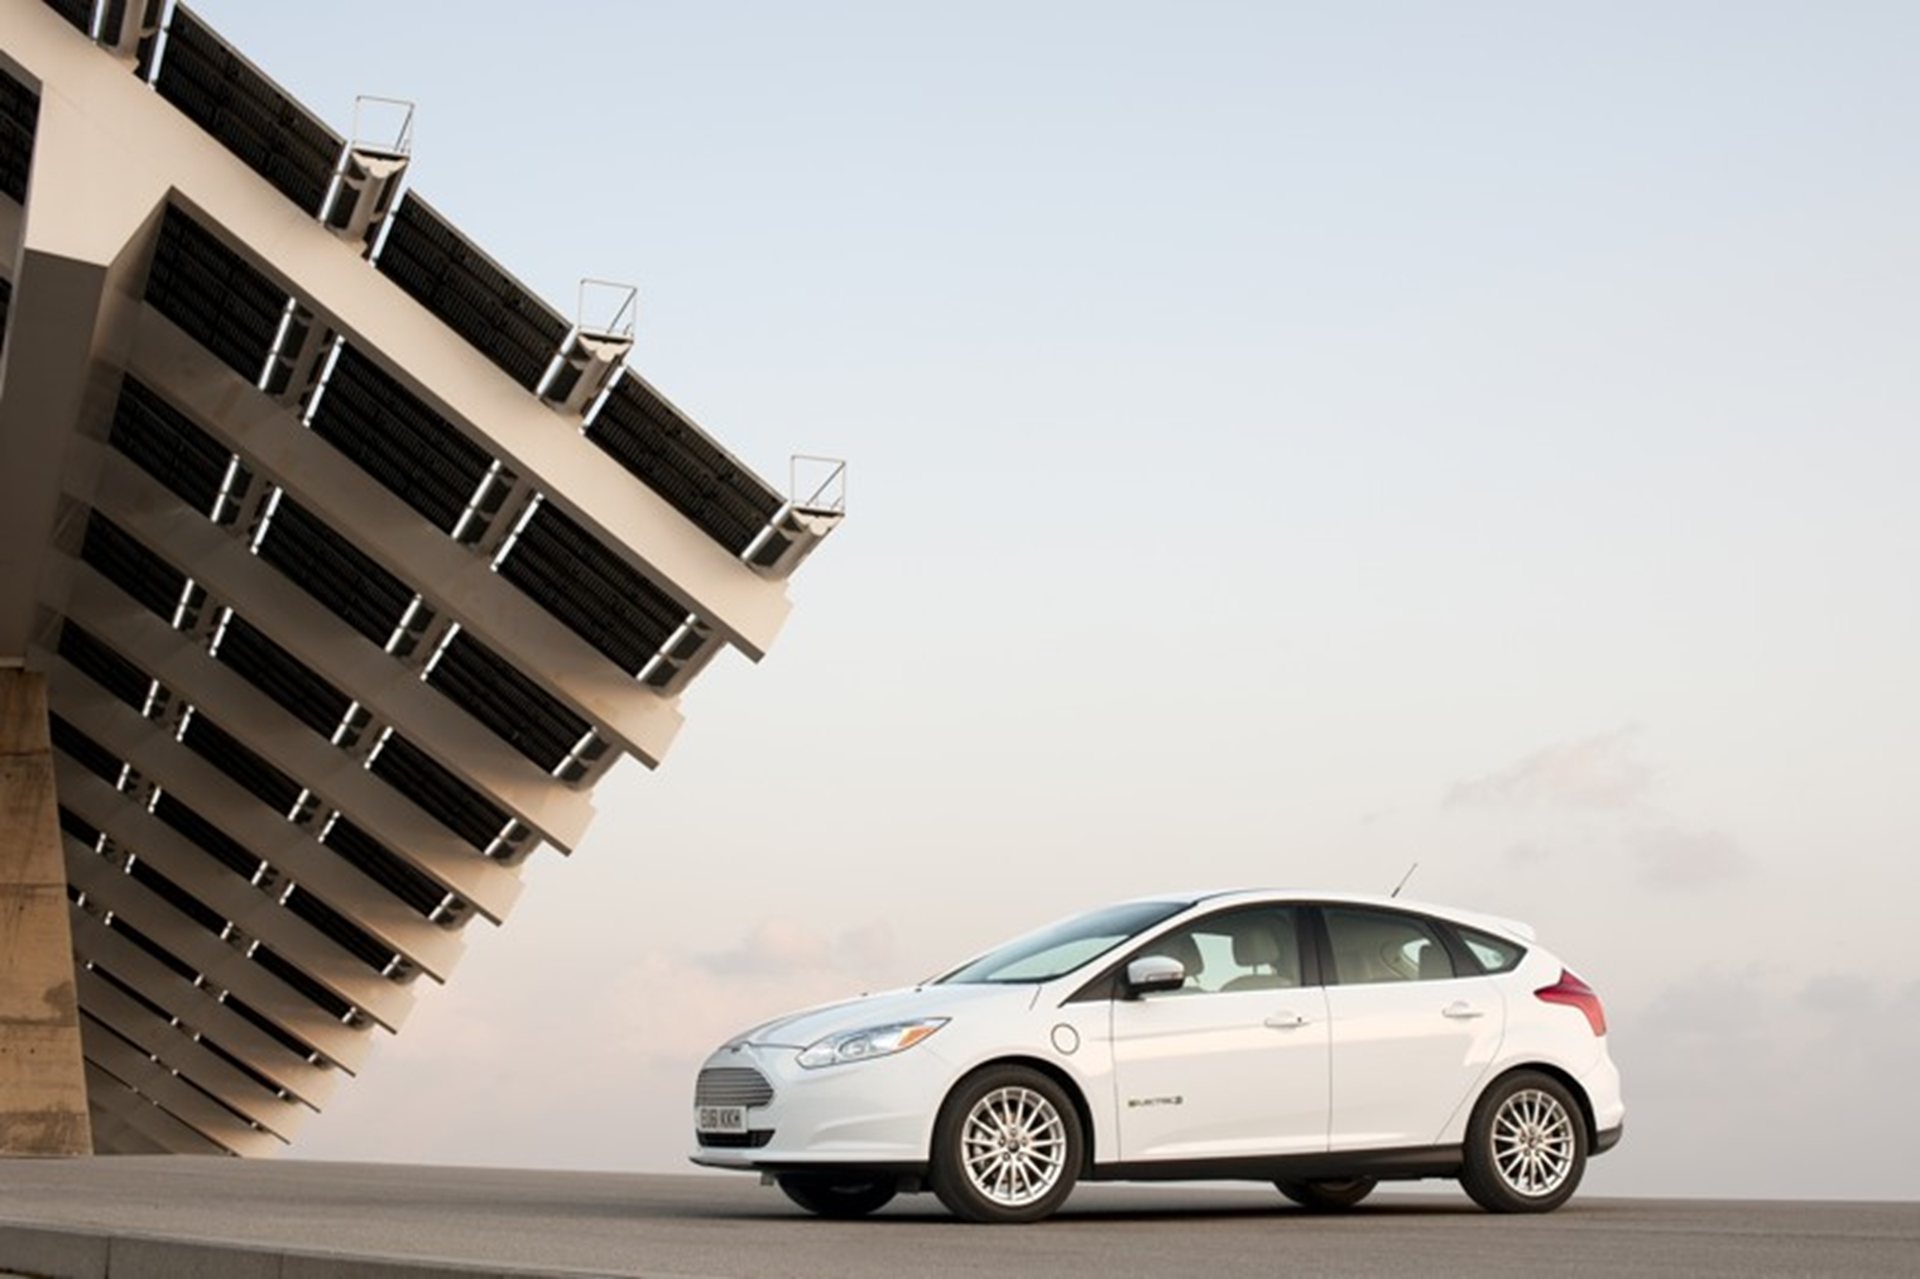 Ford Focus Electric Vehicle 2012